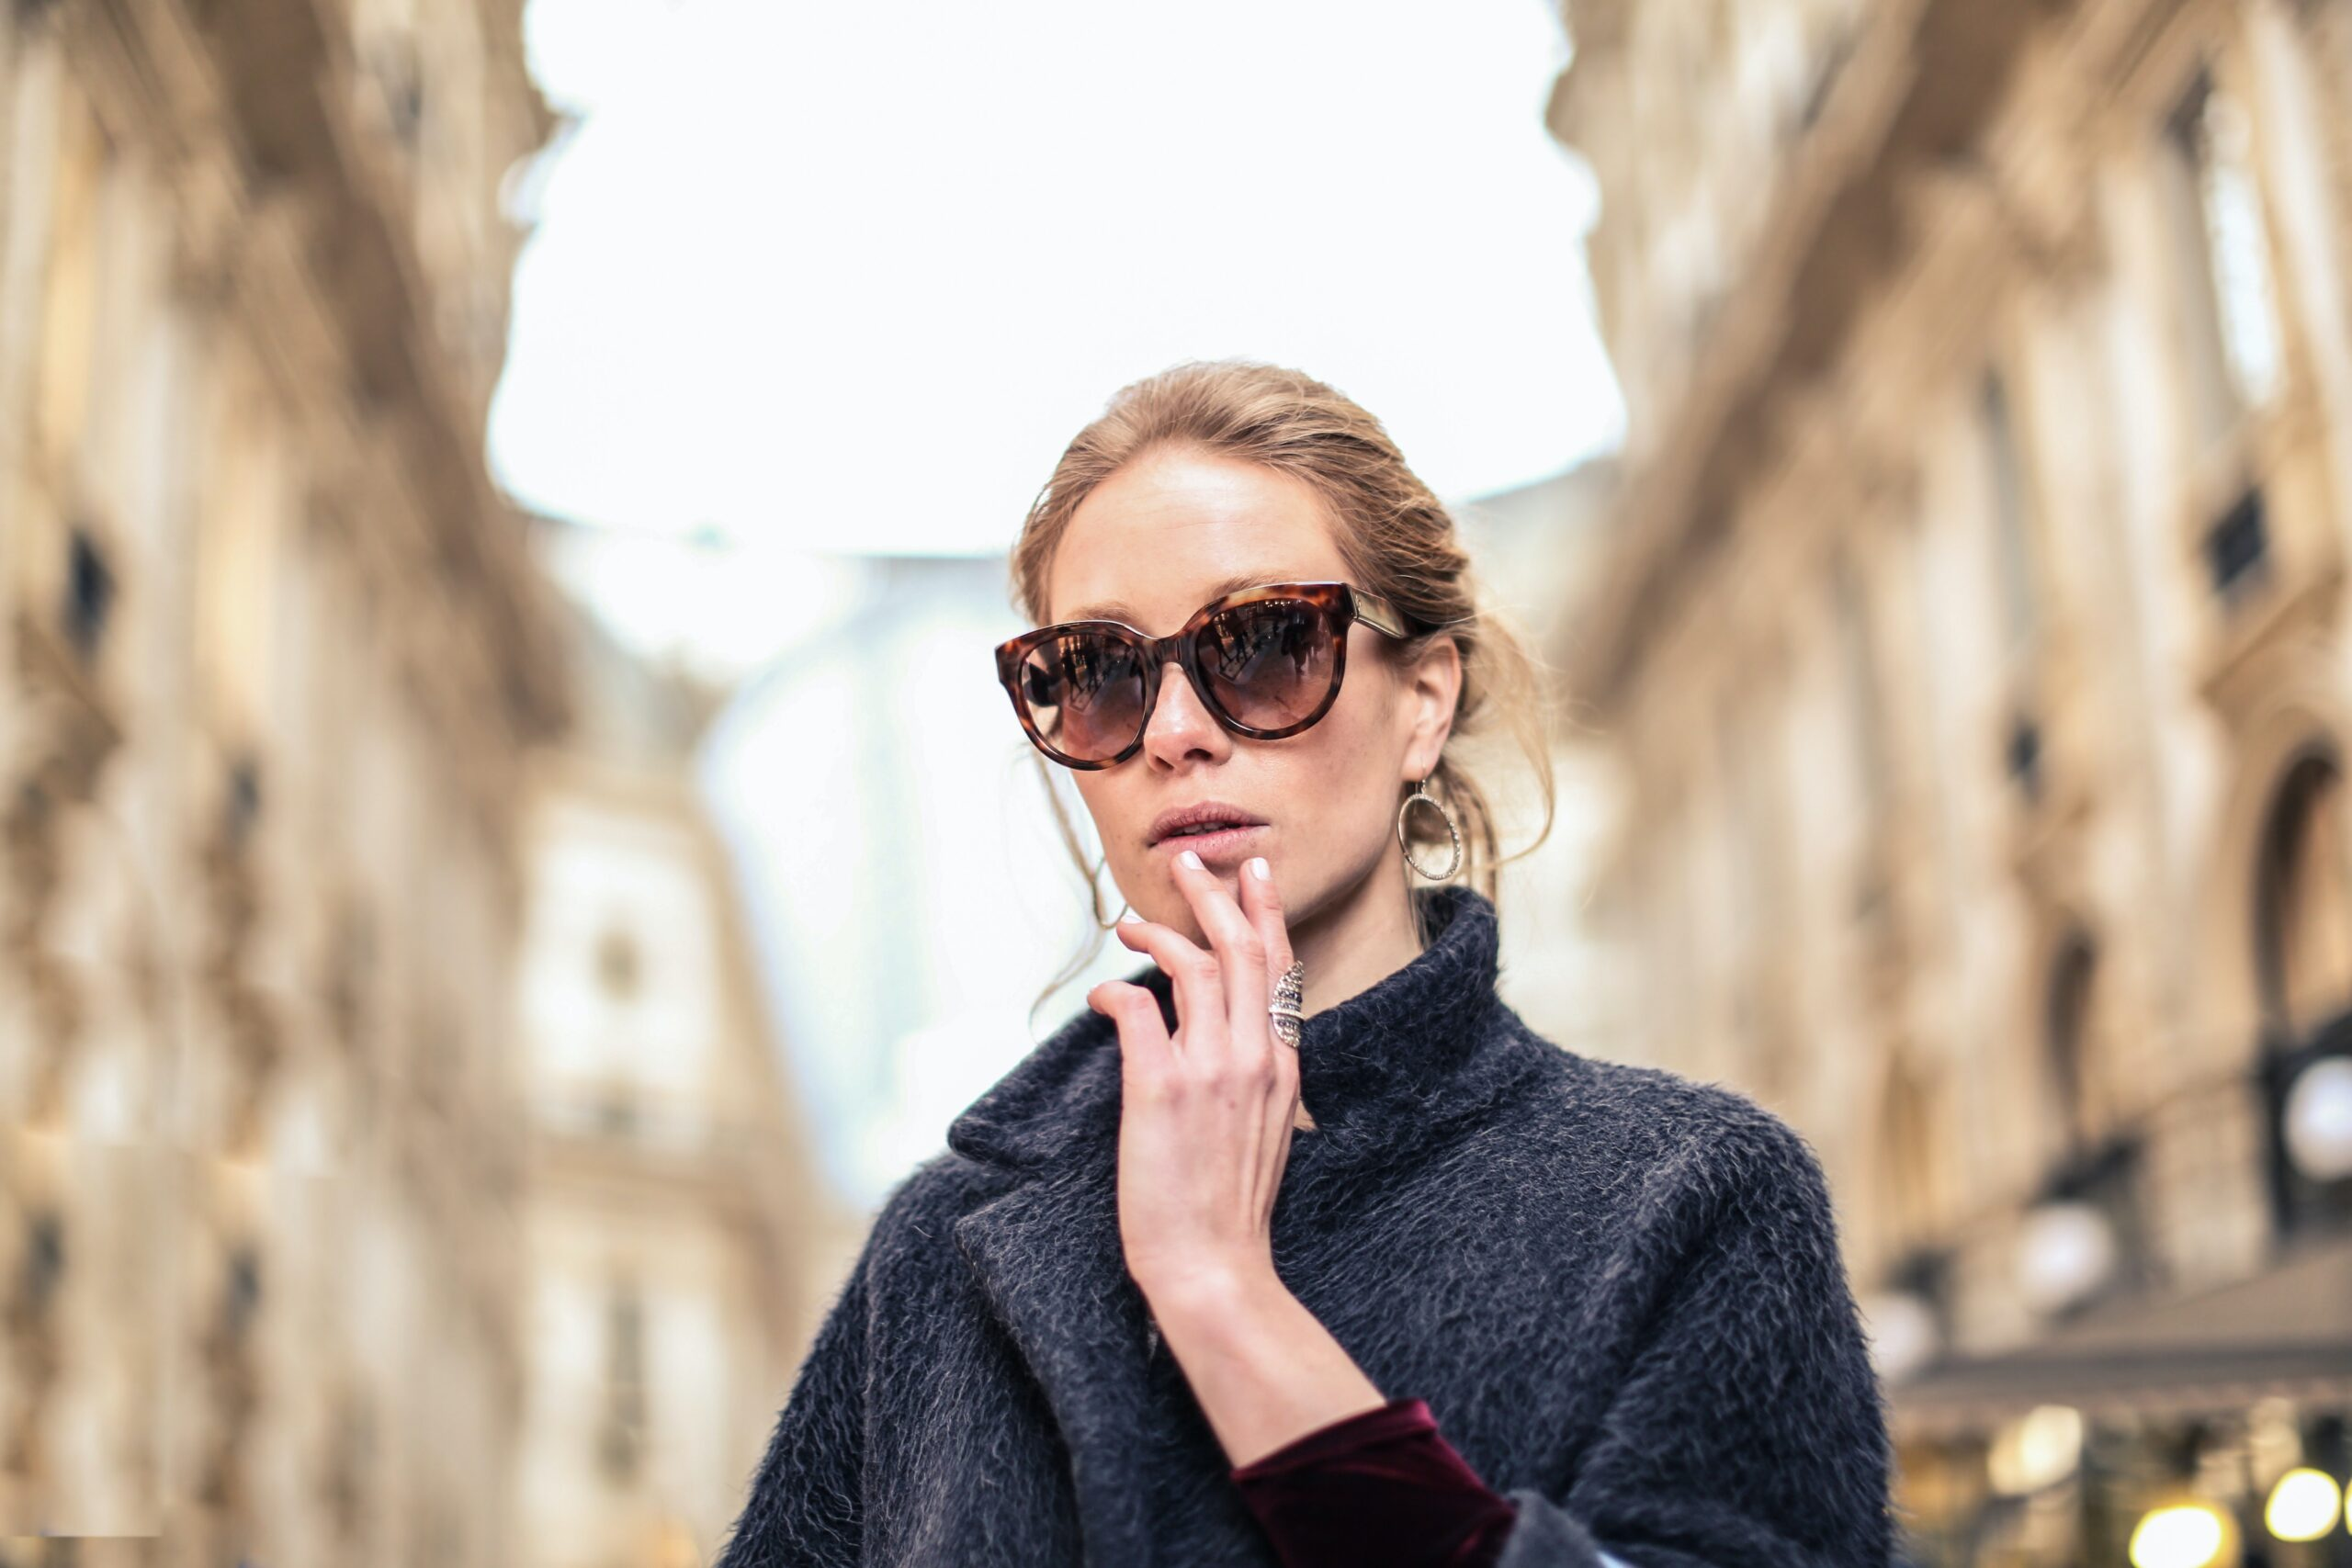 The 2021 Eyewear Trends You Need To Know To Look Fabulous All Year Round